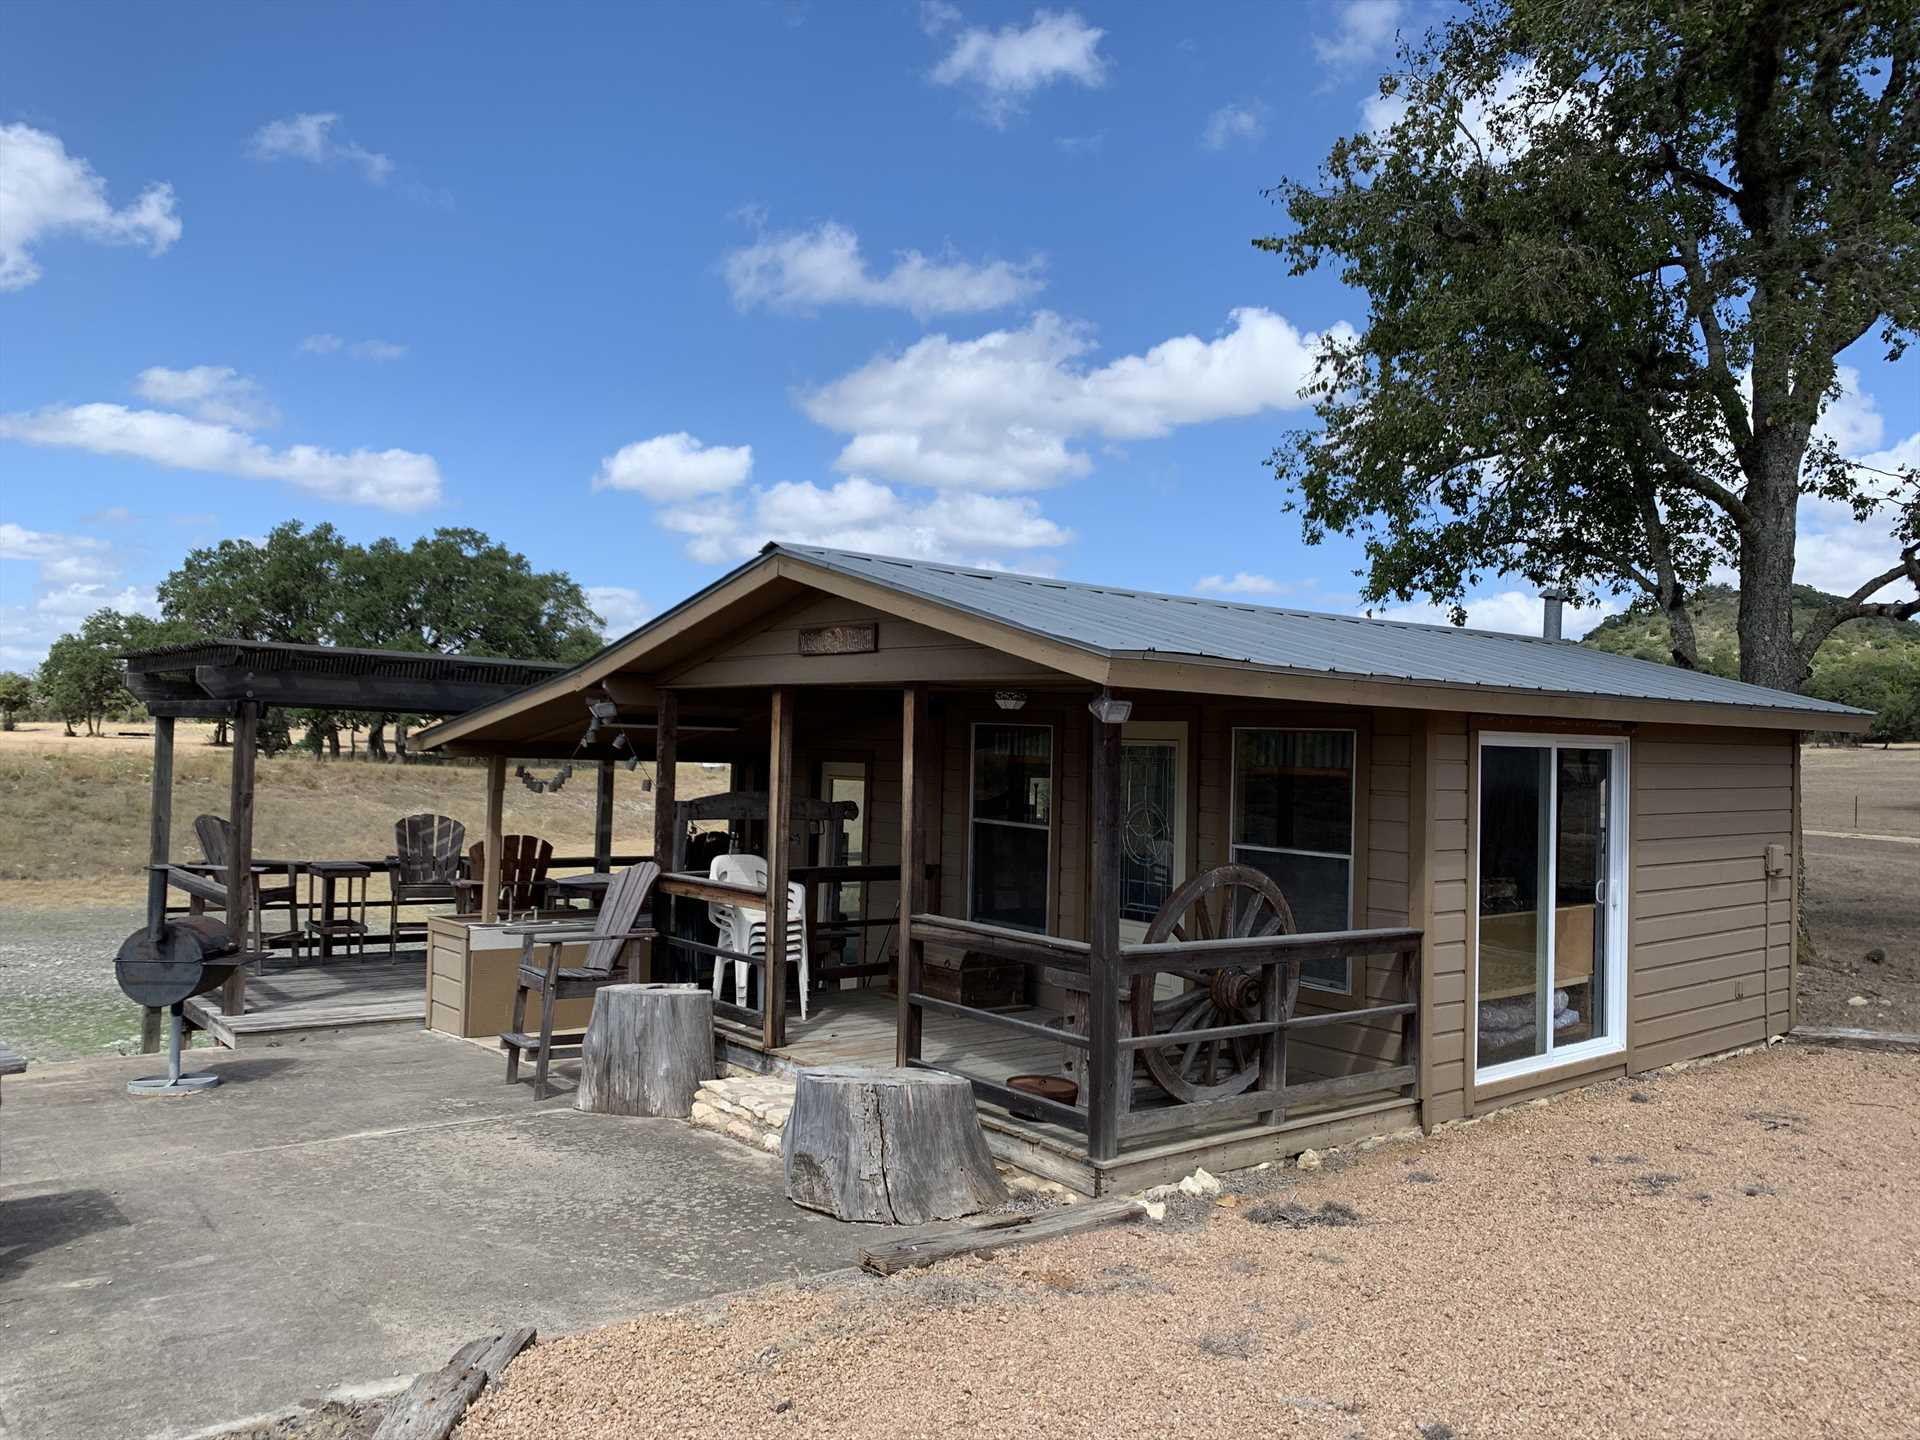 All guests at Tabasco Ranch share the common space of the pavilion, and there's plenty of room for everyone.